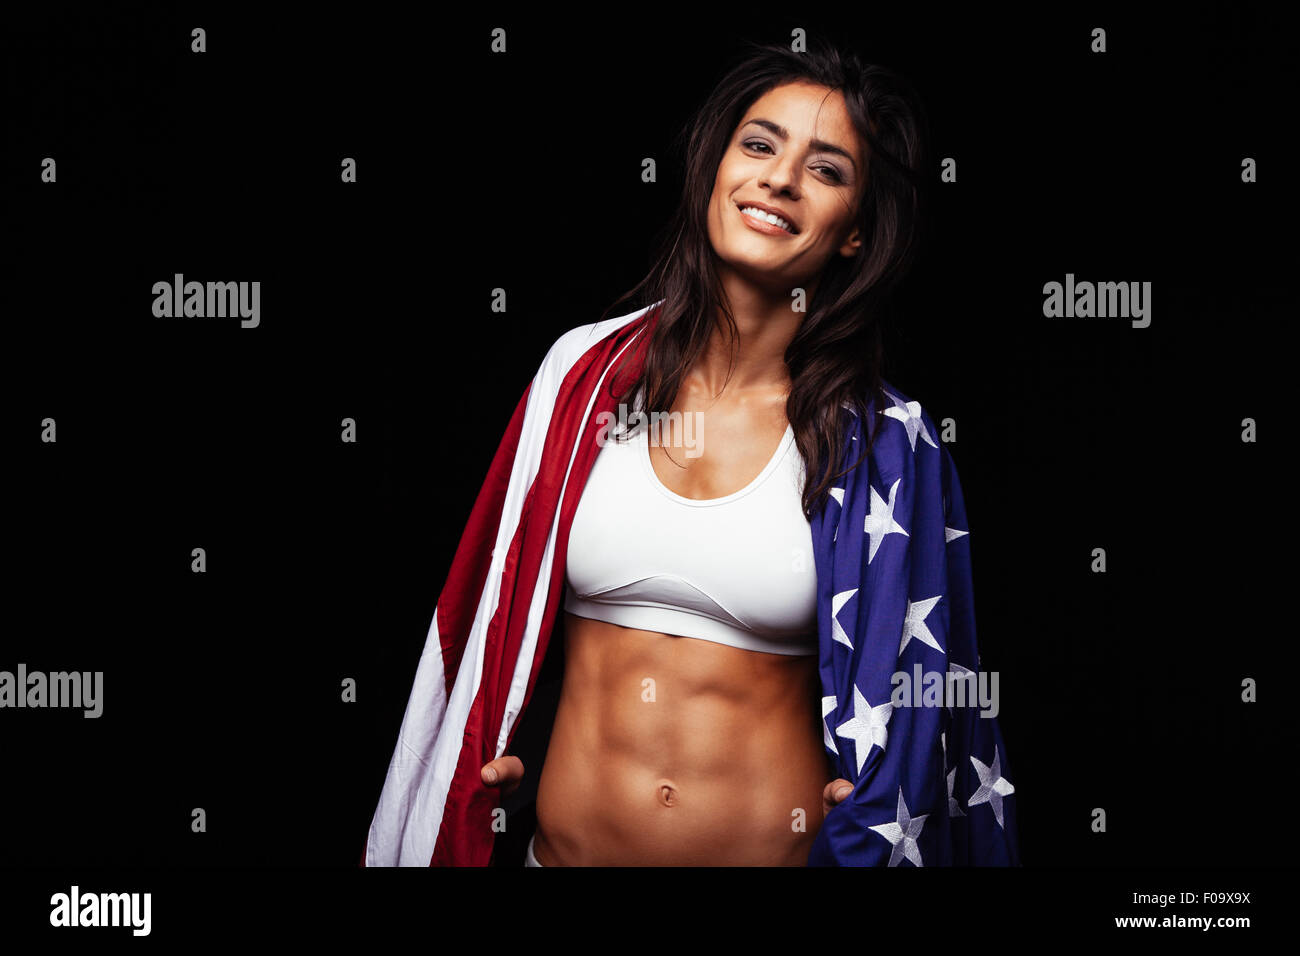 Portrait of happy young woman in sportswear holding American flag. Fit american female athlete wrapped in flag on - Stock Image